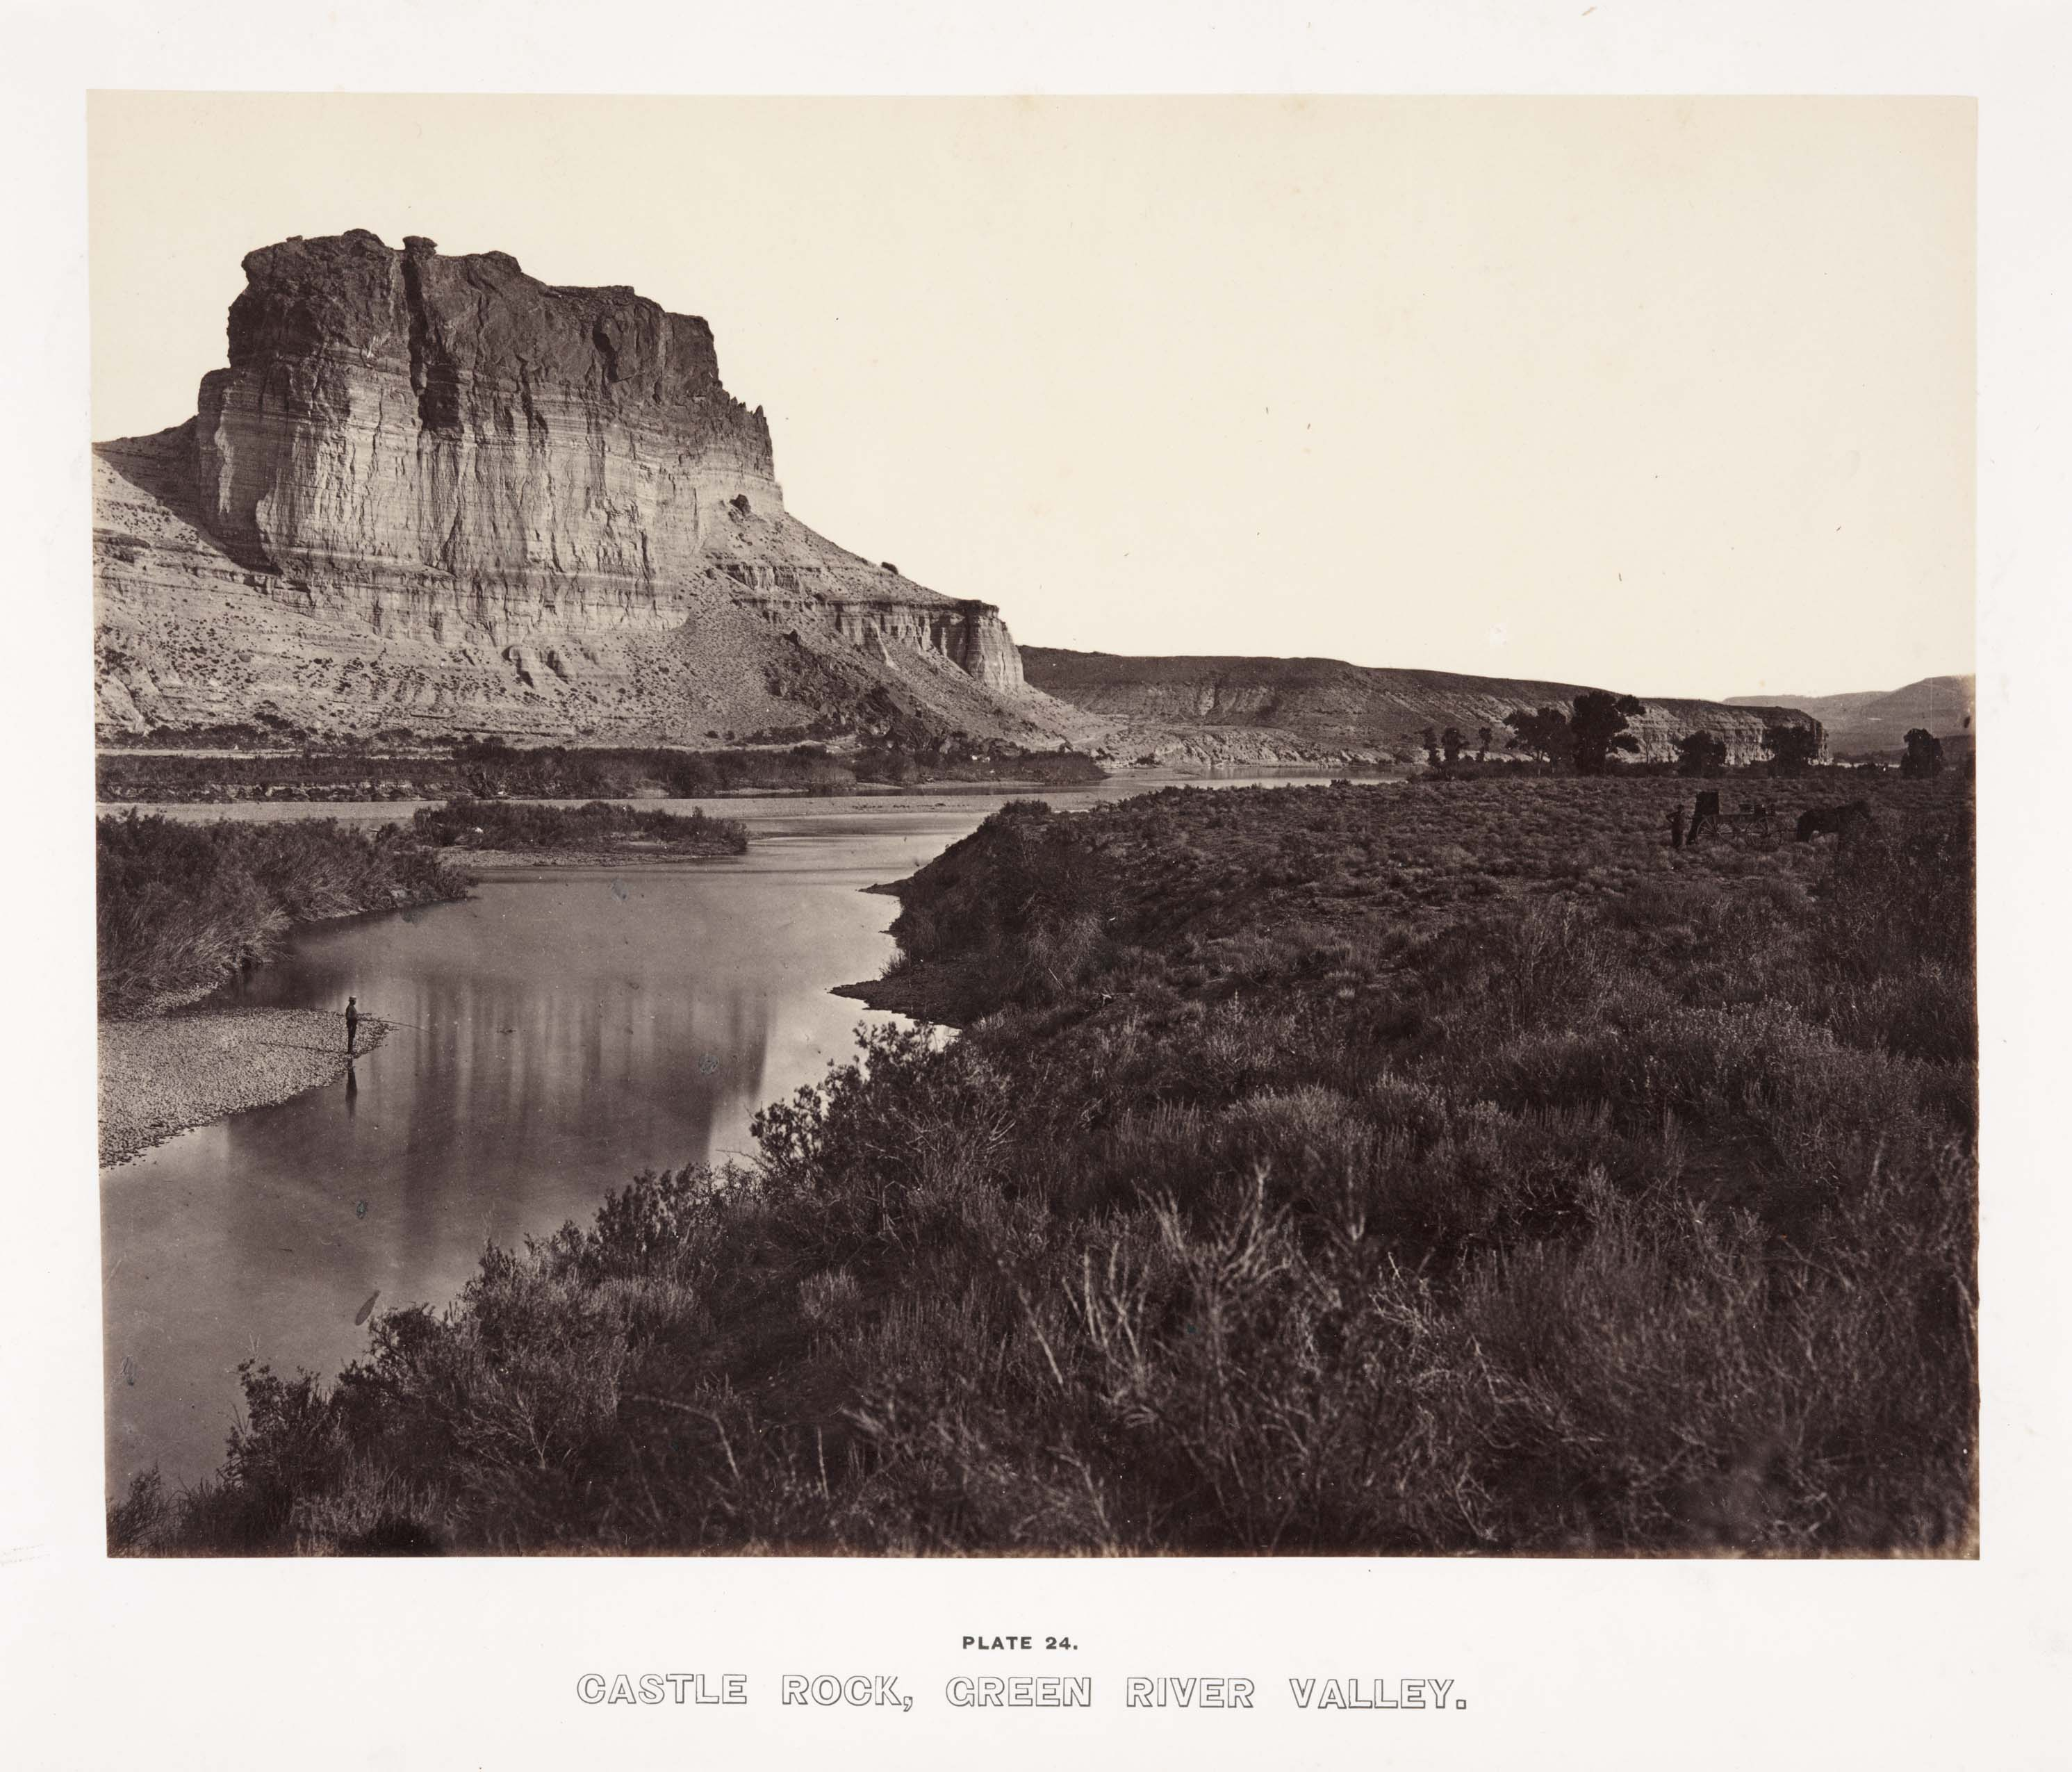 Andrew J.  Russell, 'Castle Rock, Green River Valley,' from The Great West Illustrated, 1869. Huntington Library, Art Collections, and Botanical Gardens.